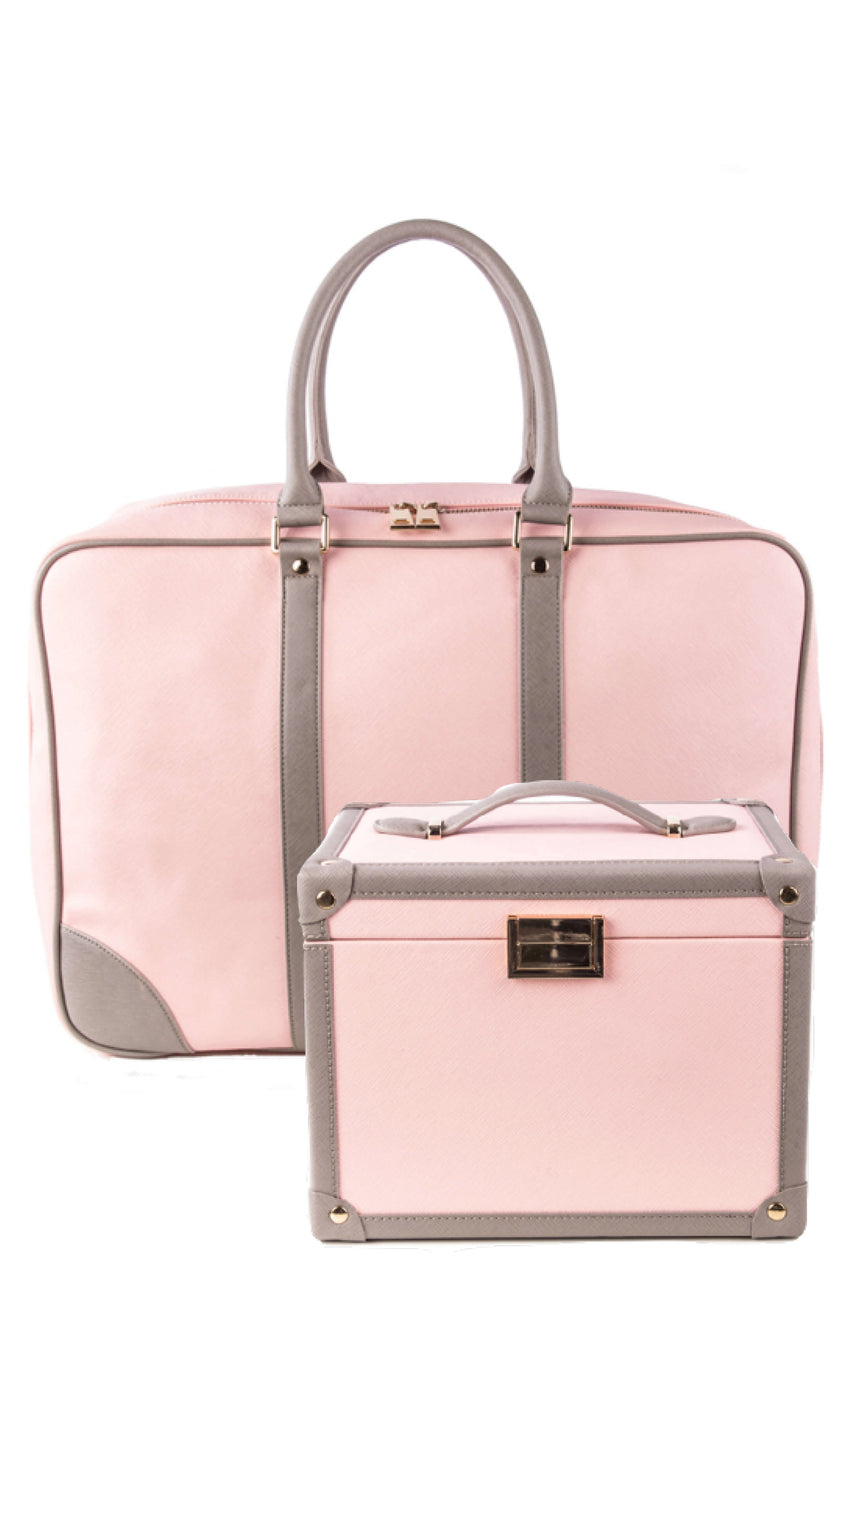 Wandher-lust Luggage Set